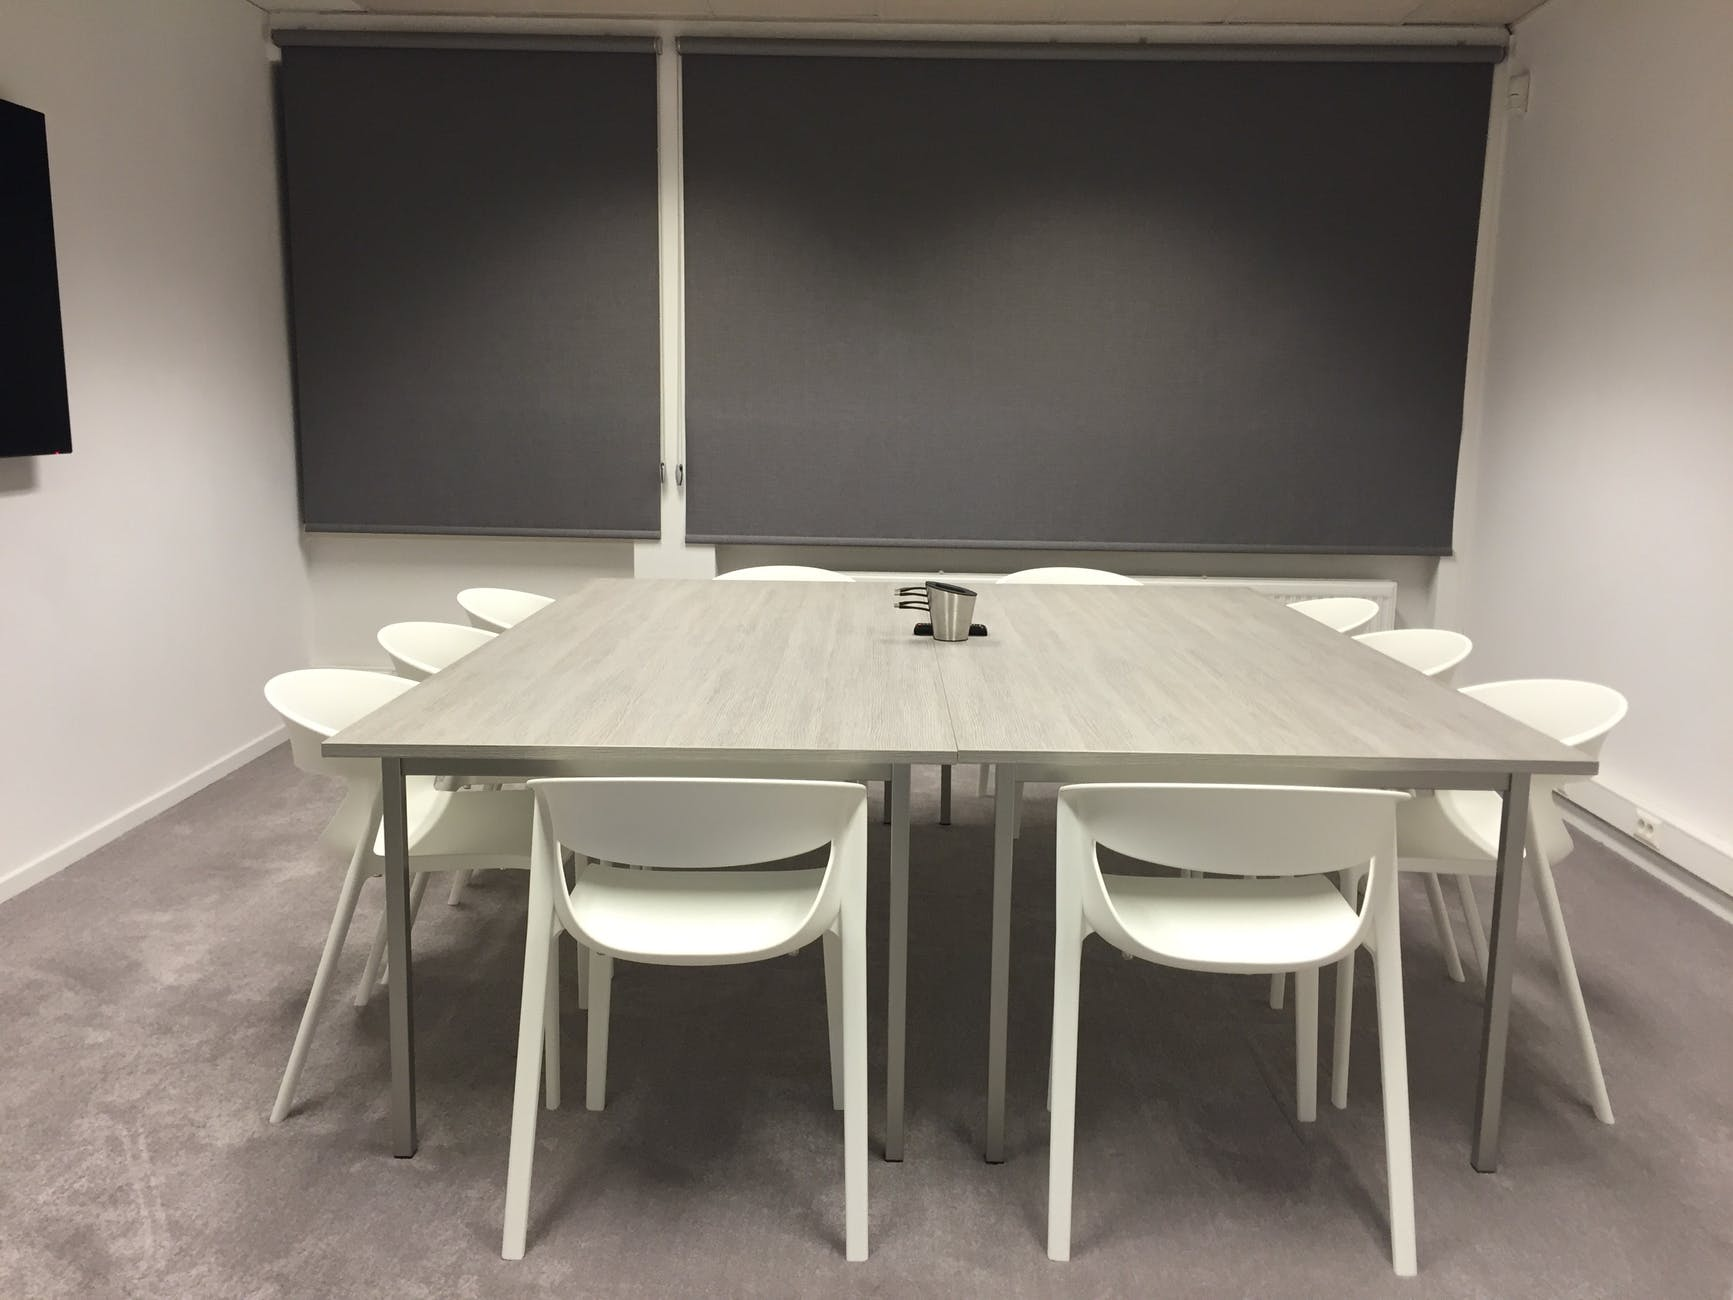 black and white blackboard blinds chairs